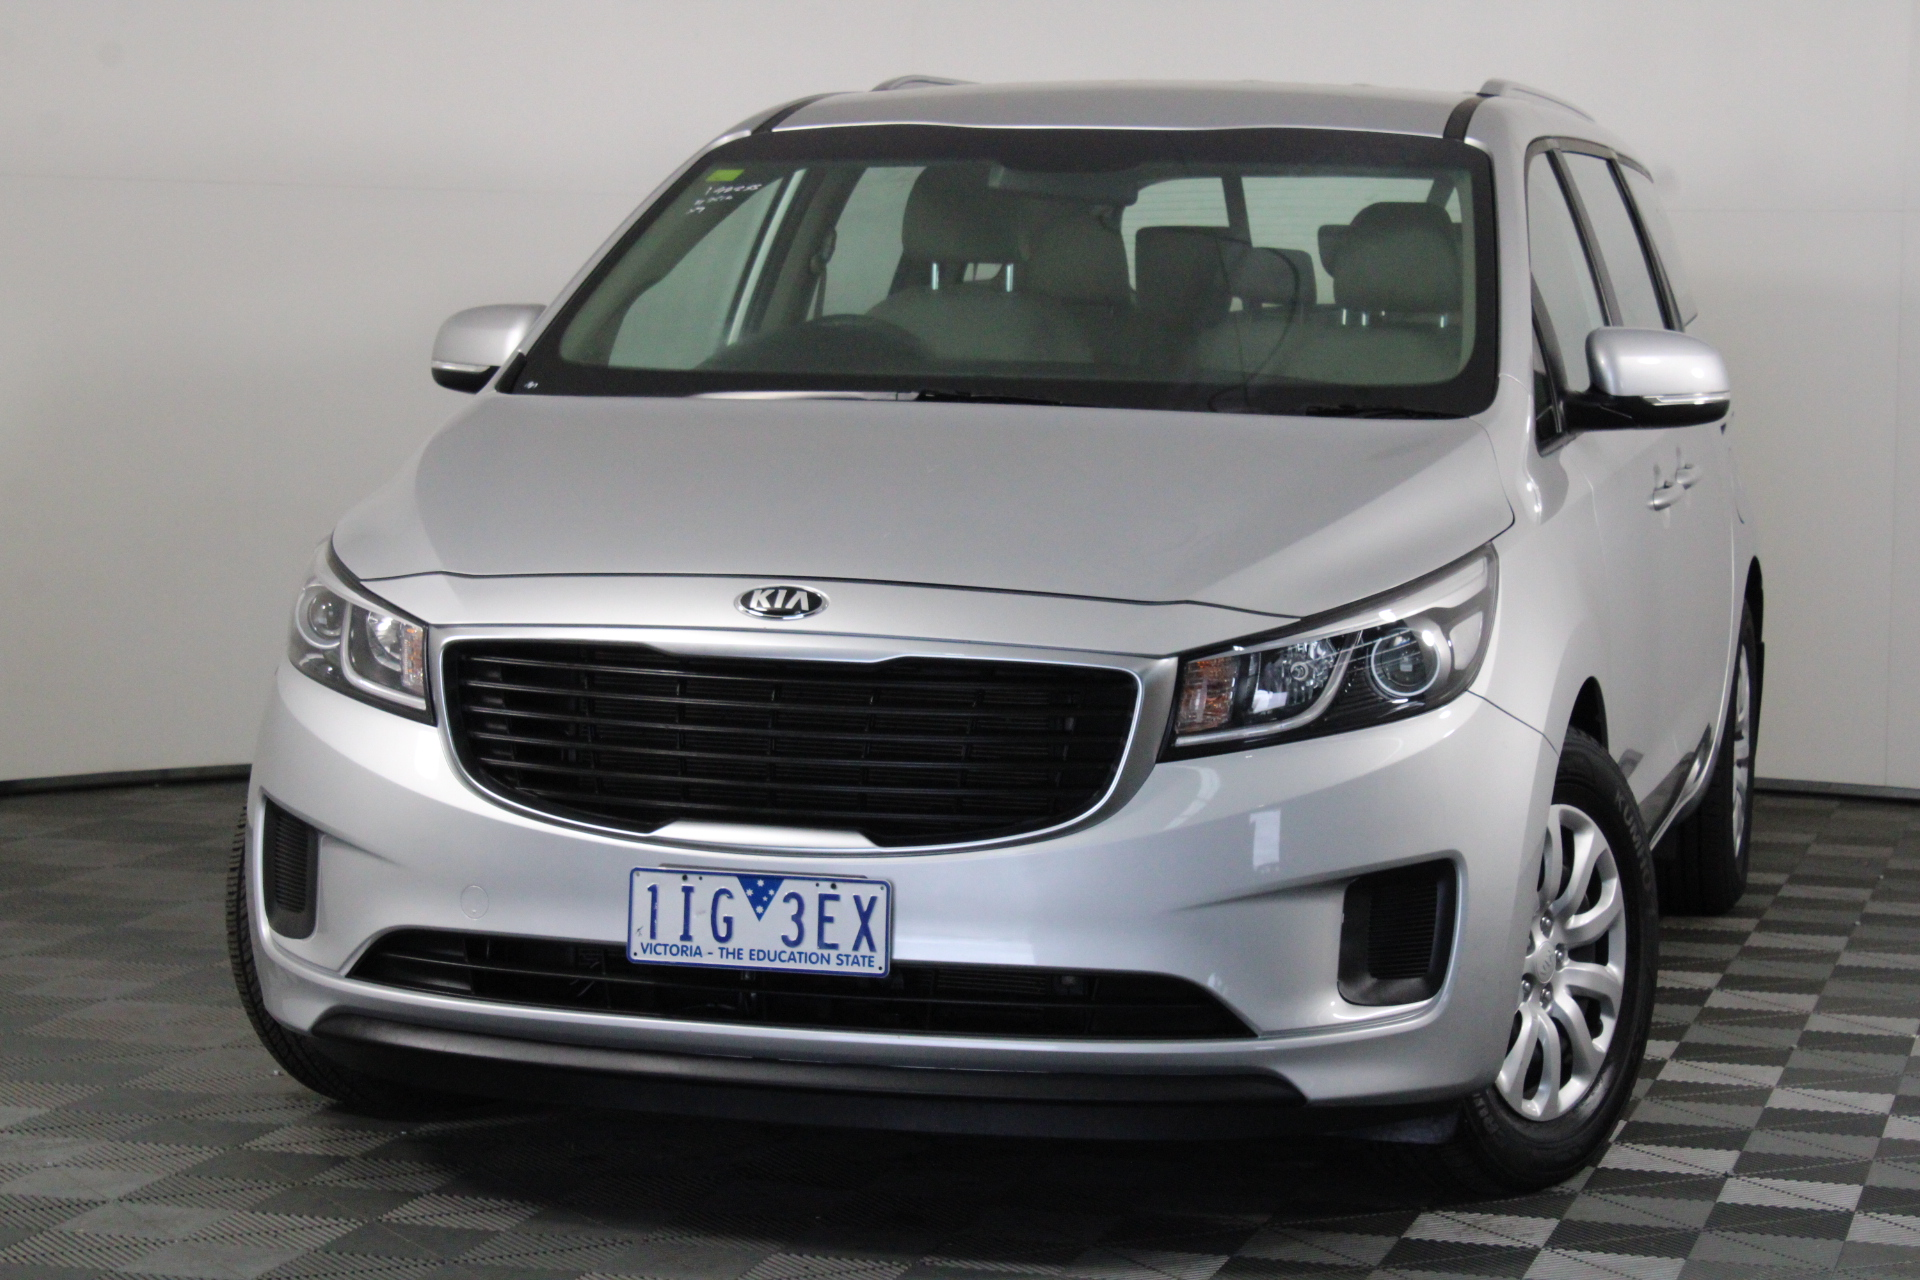 2016 Kia Carnival S YP Automatic 8 Seats People Mover